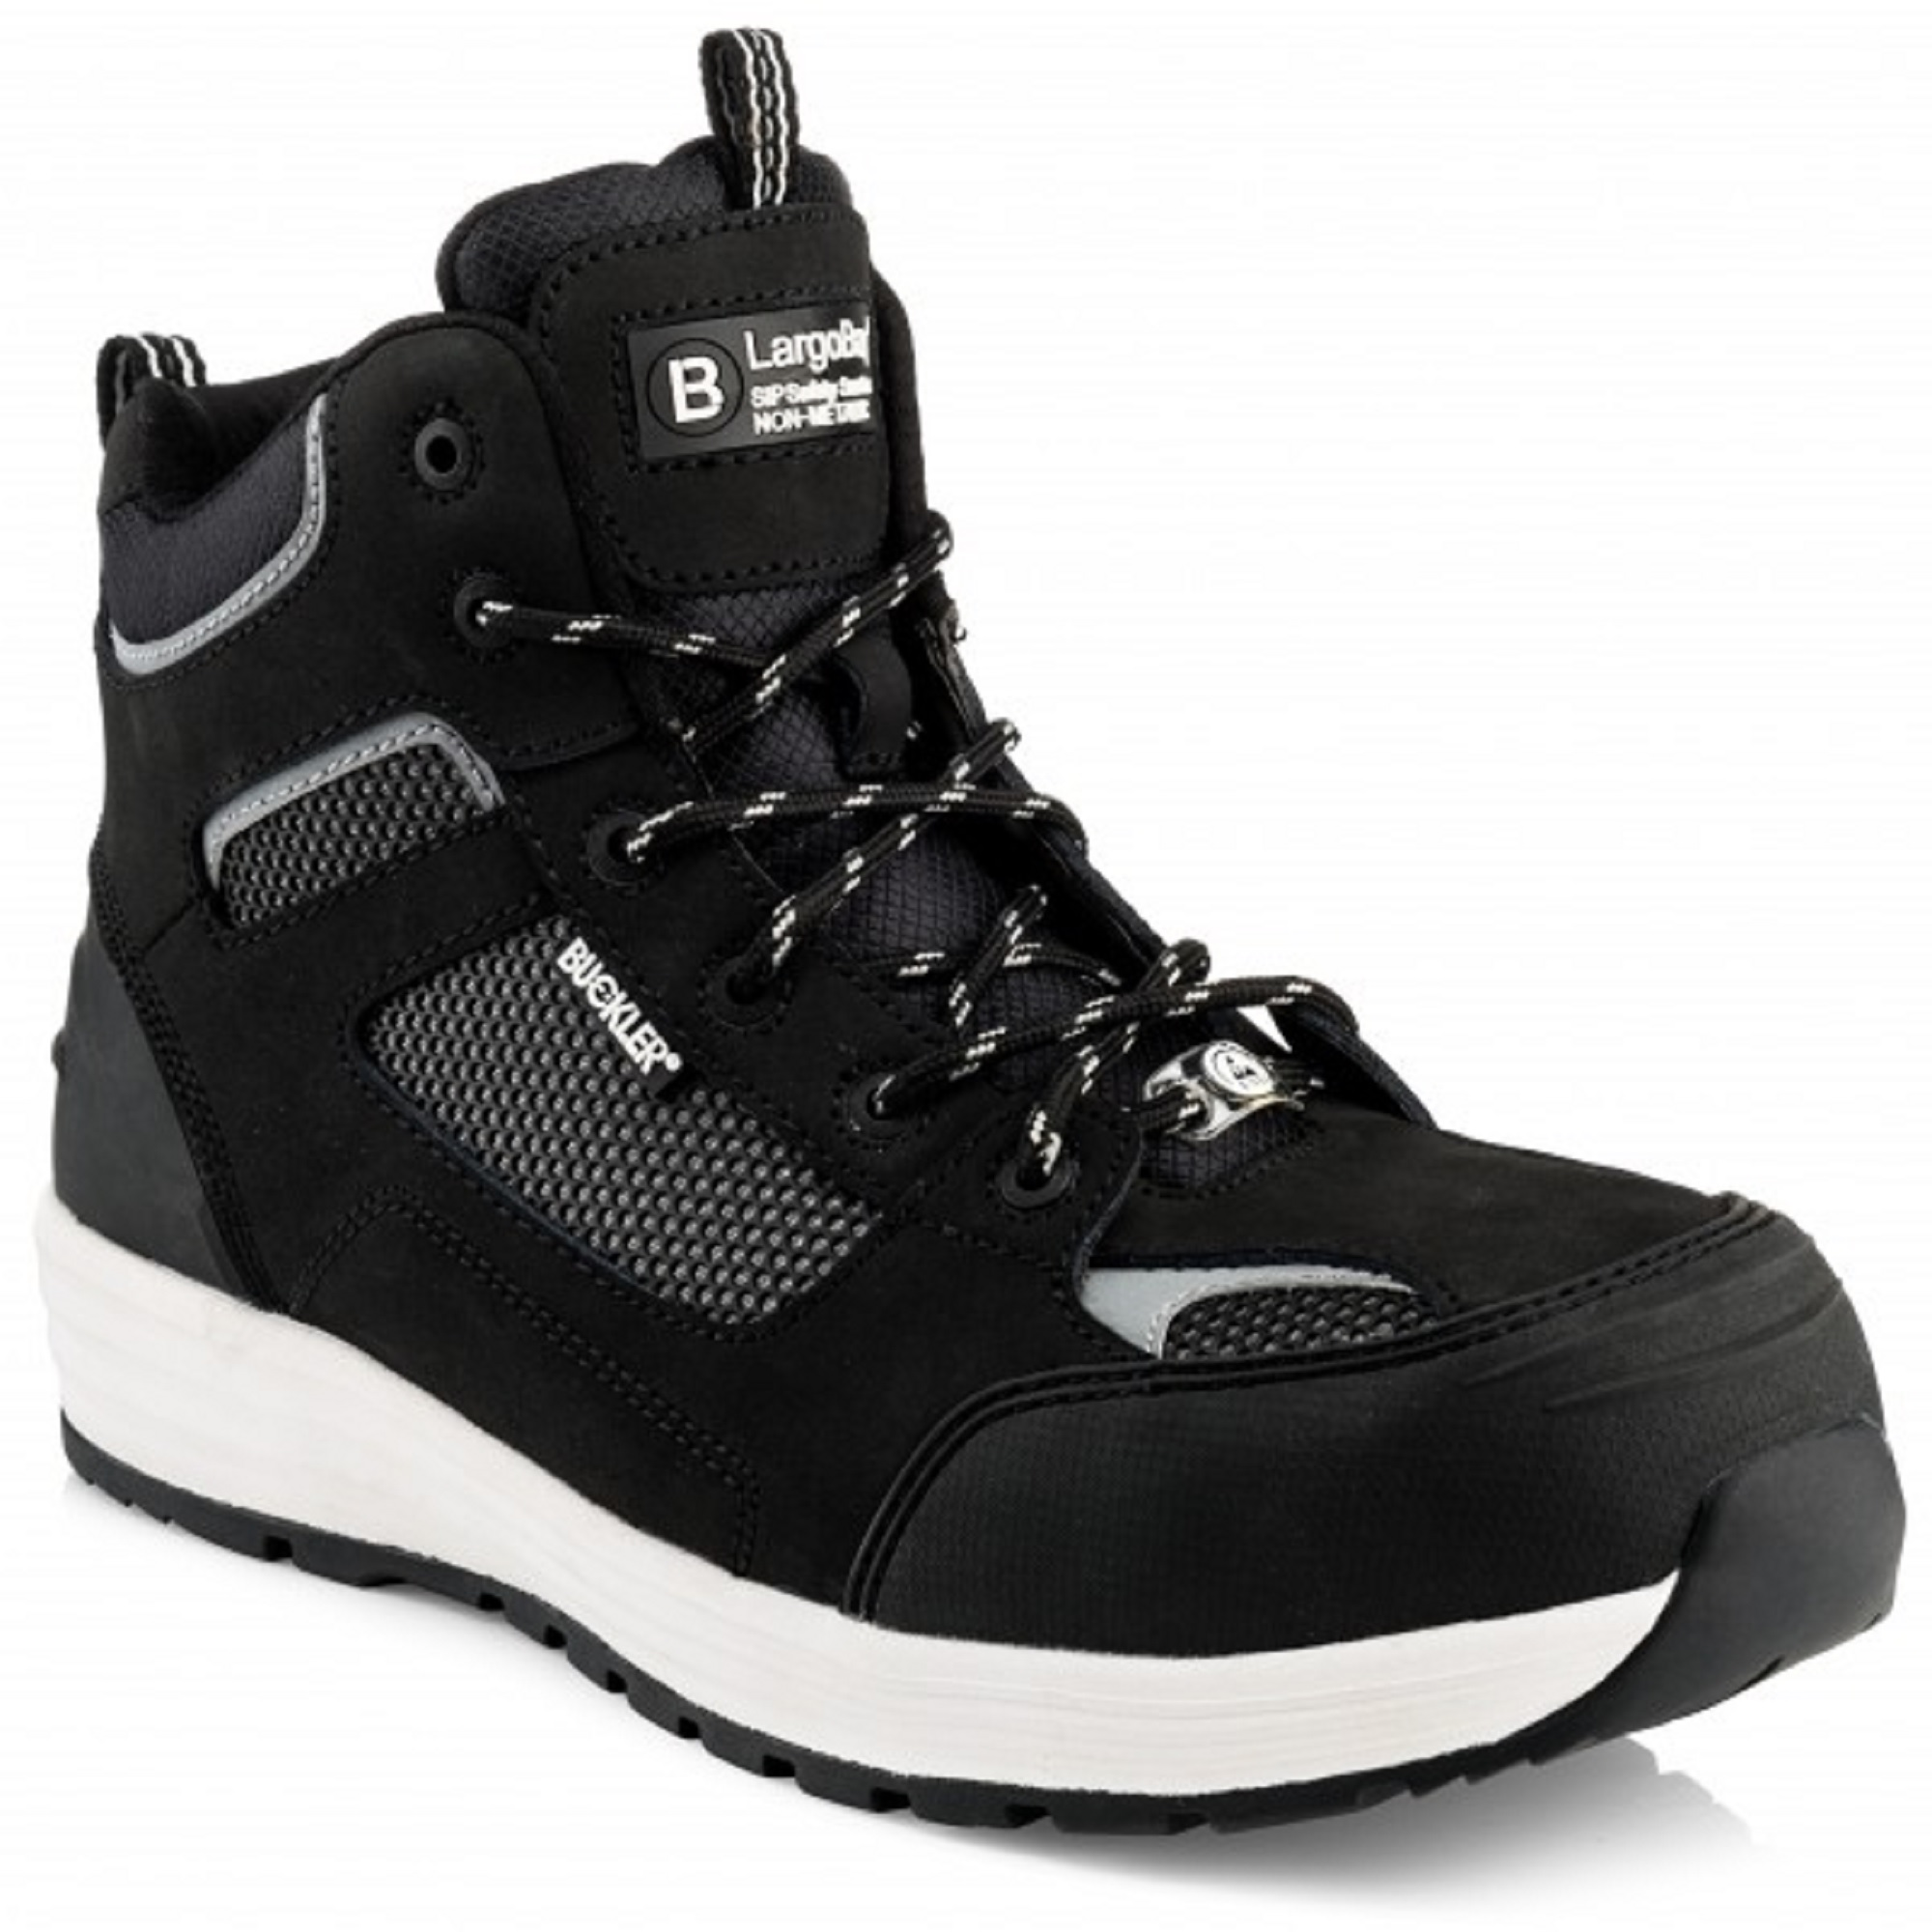 Leather lace up Buckler Baz safety boot in black with white soles on a white background